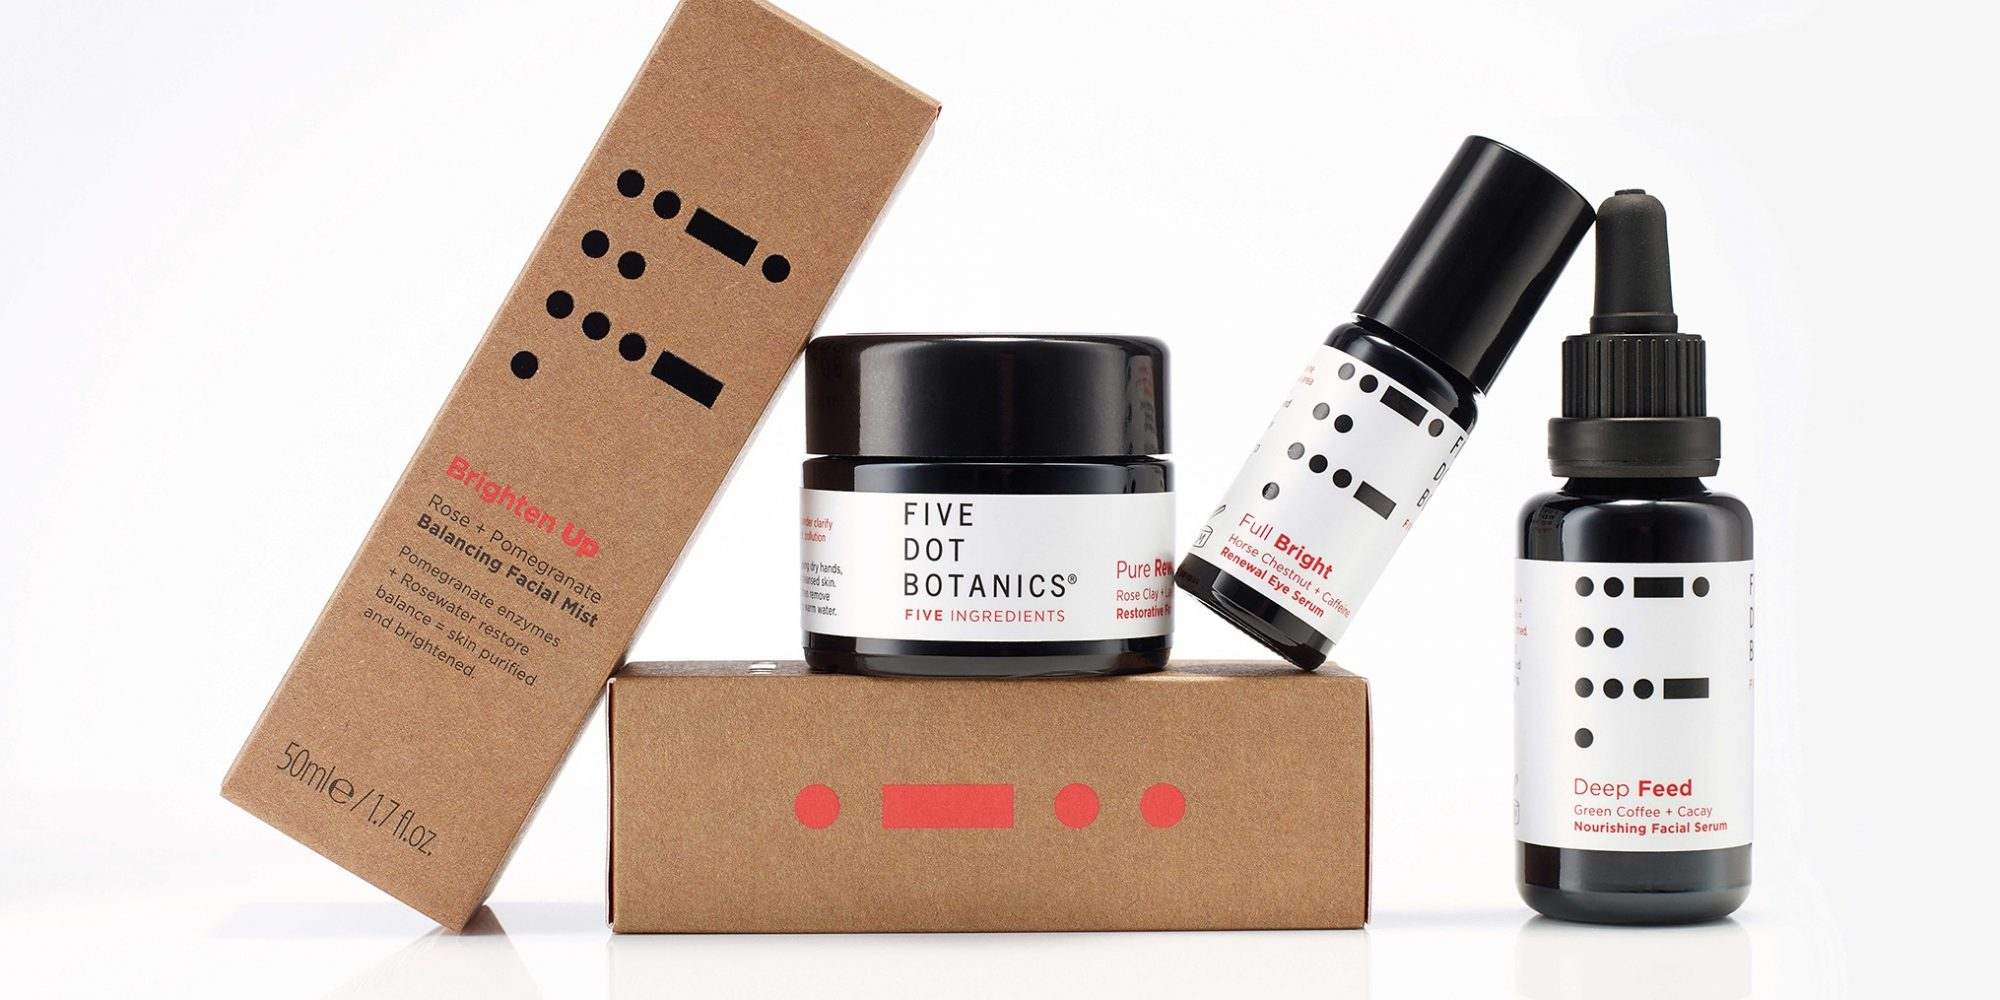 Five Dot Botanics Aims To Be More Than Just Another Minimalist Indie Beauty Brand